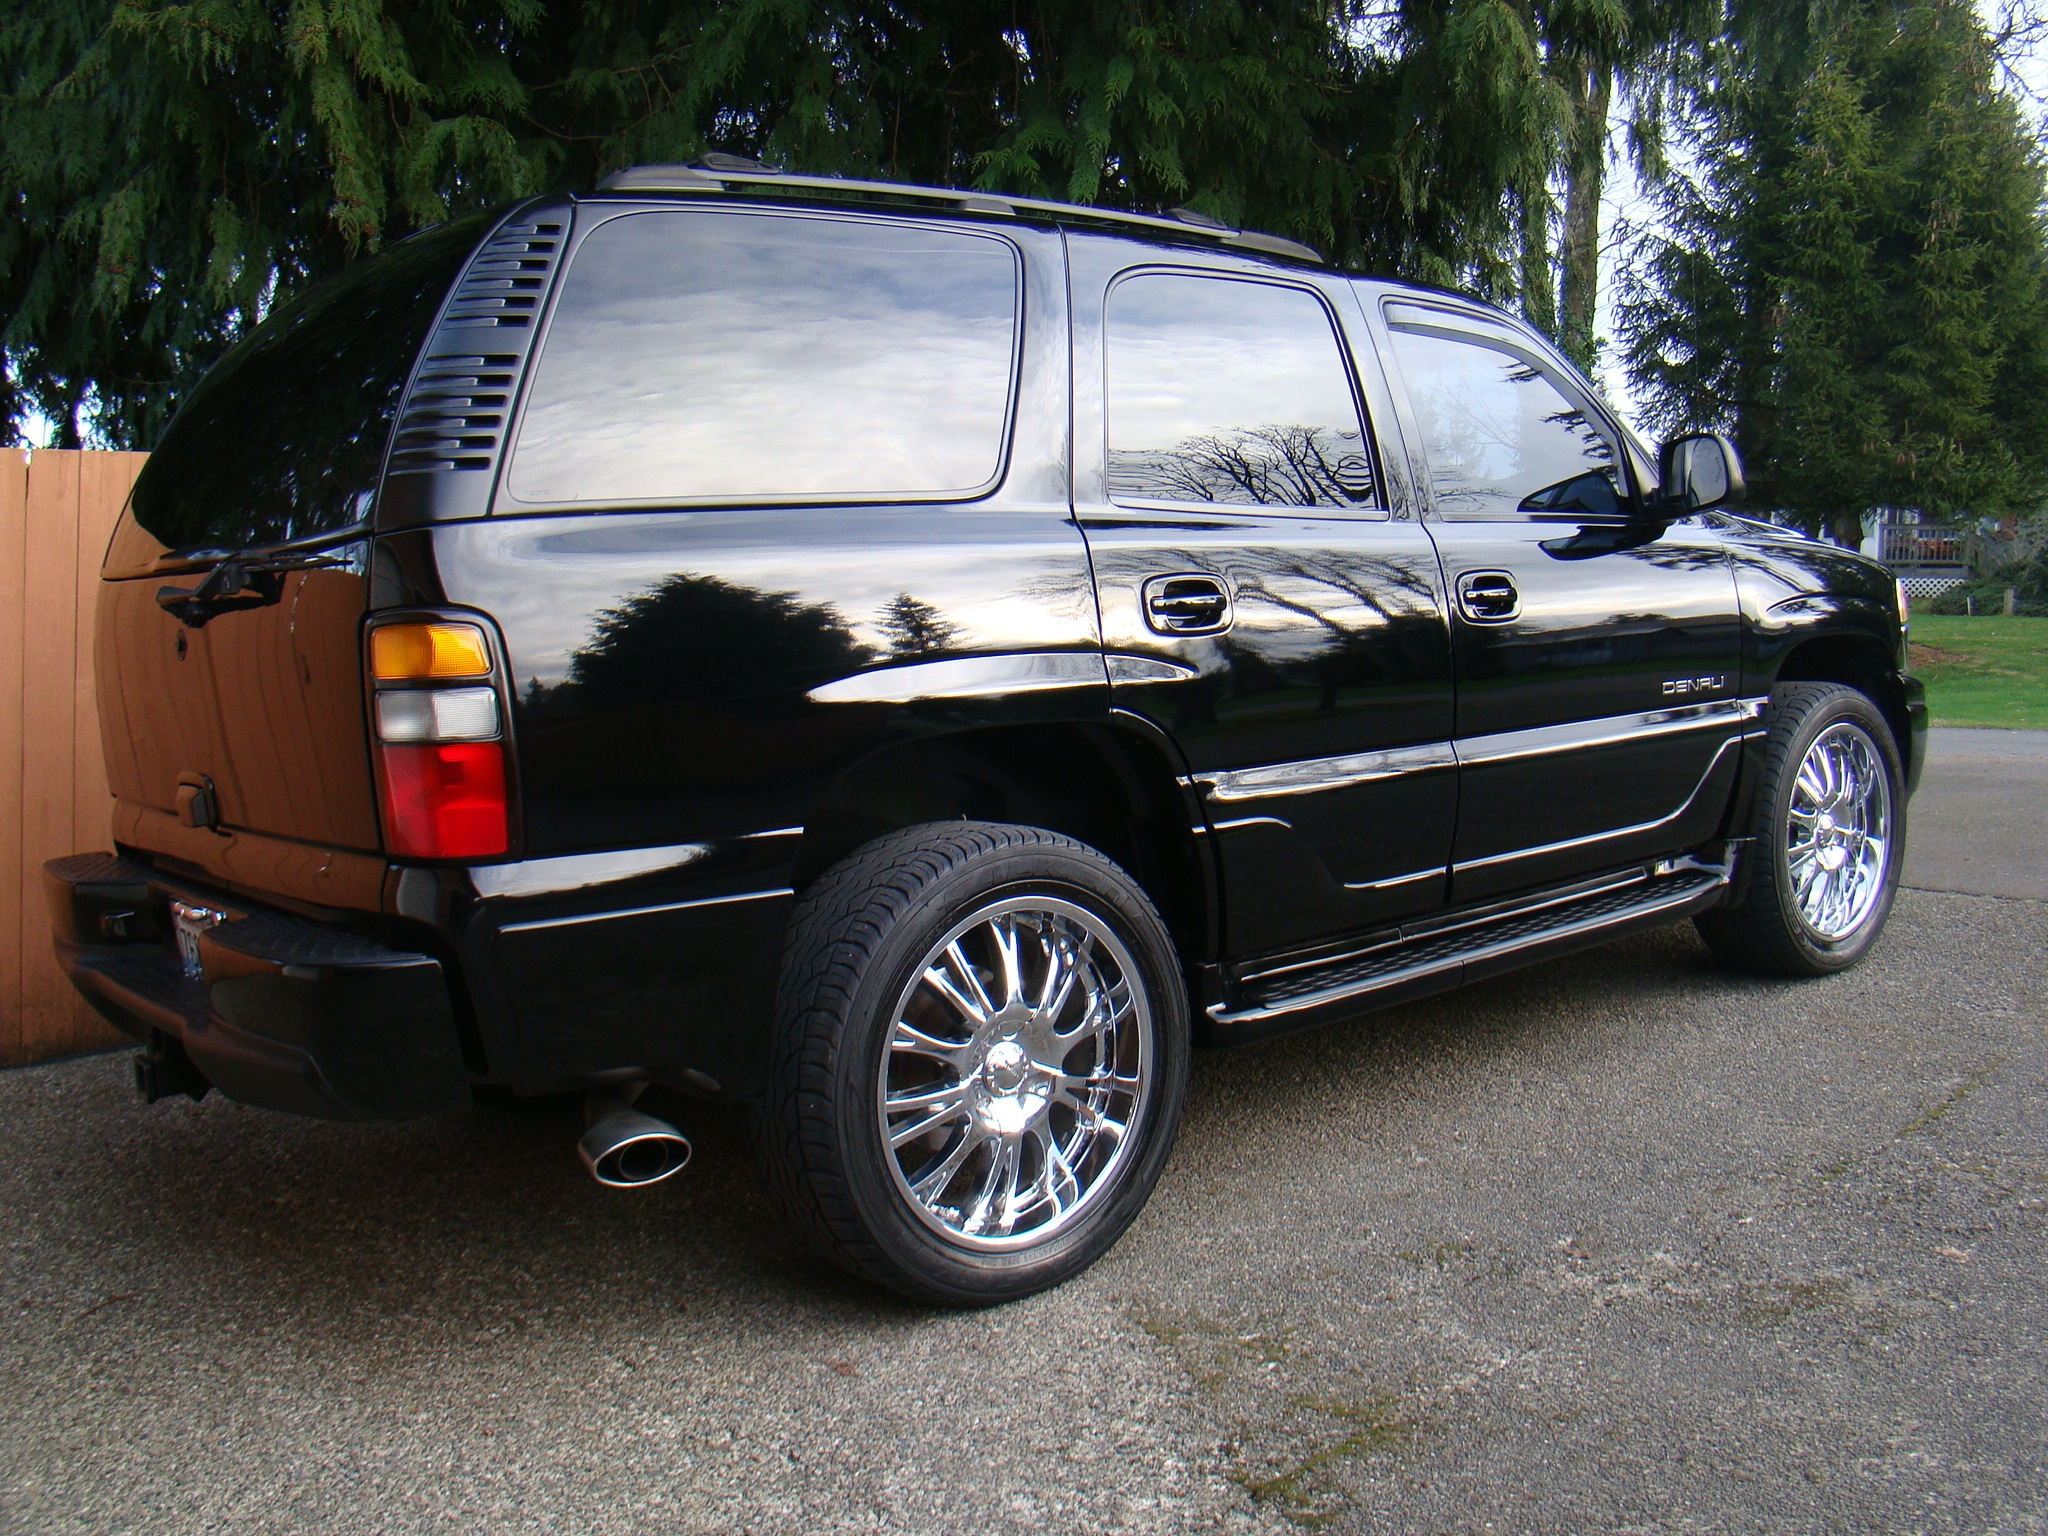 scottysdenali 2004 gmc yukon denali specs photos. Black Bedroom Furniture Sets. Home Design Ideas